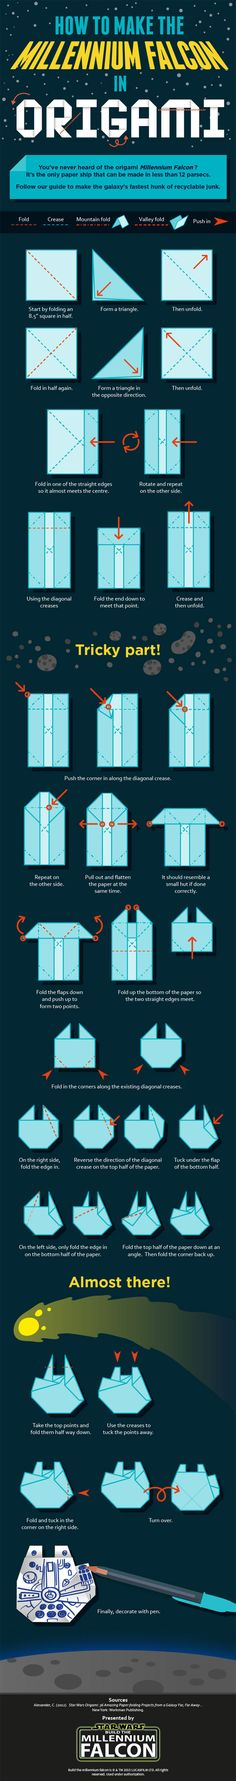 HOW TO: Make the Millennium Falcon in Origami #infographic